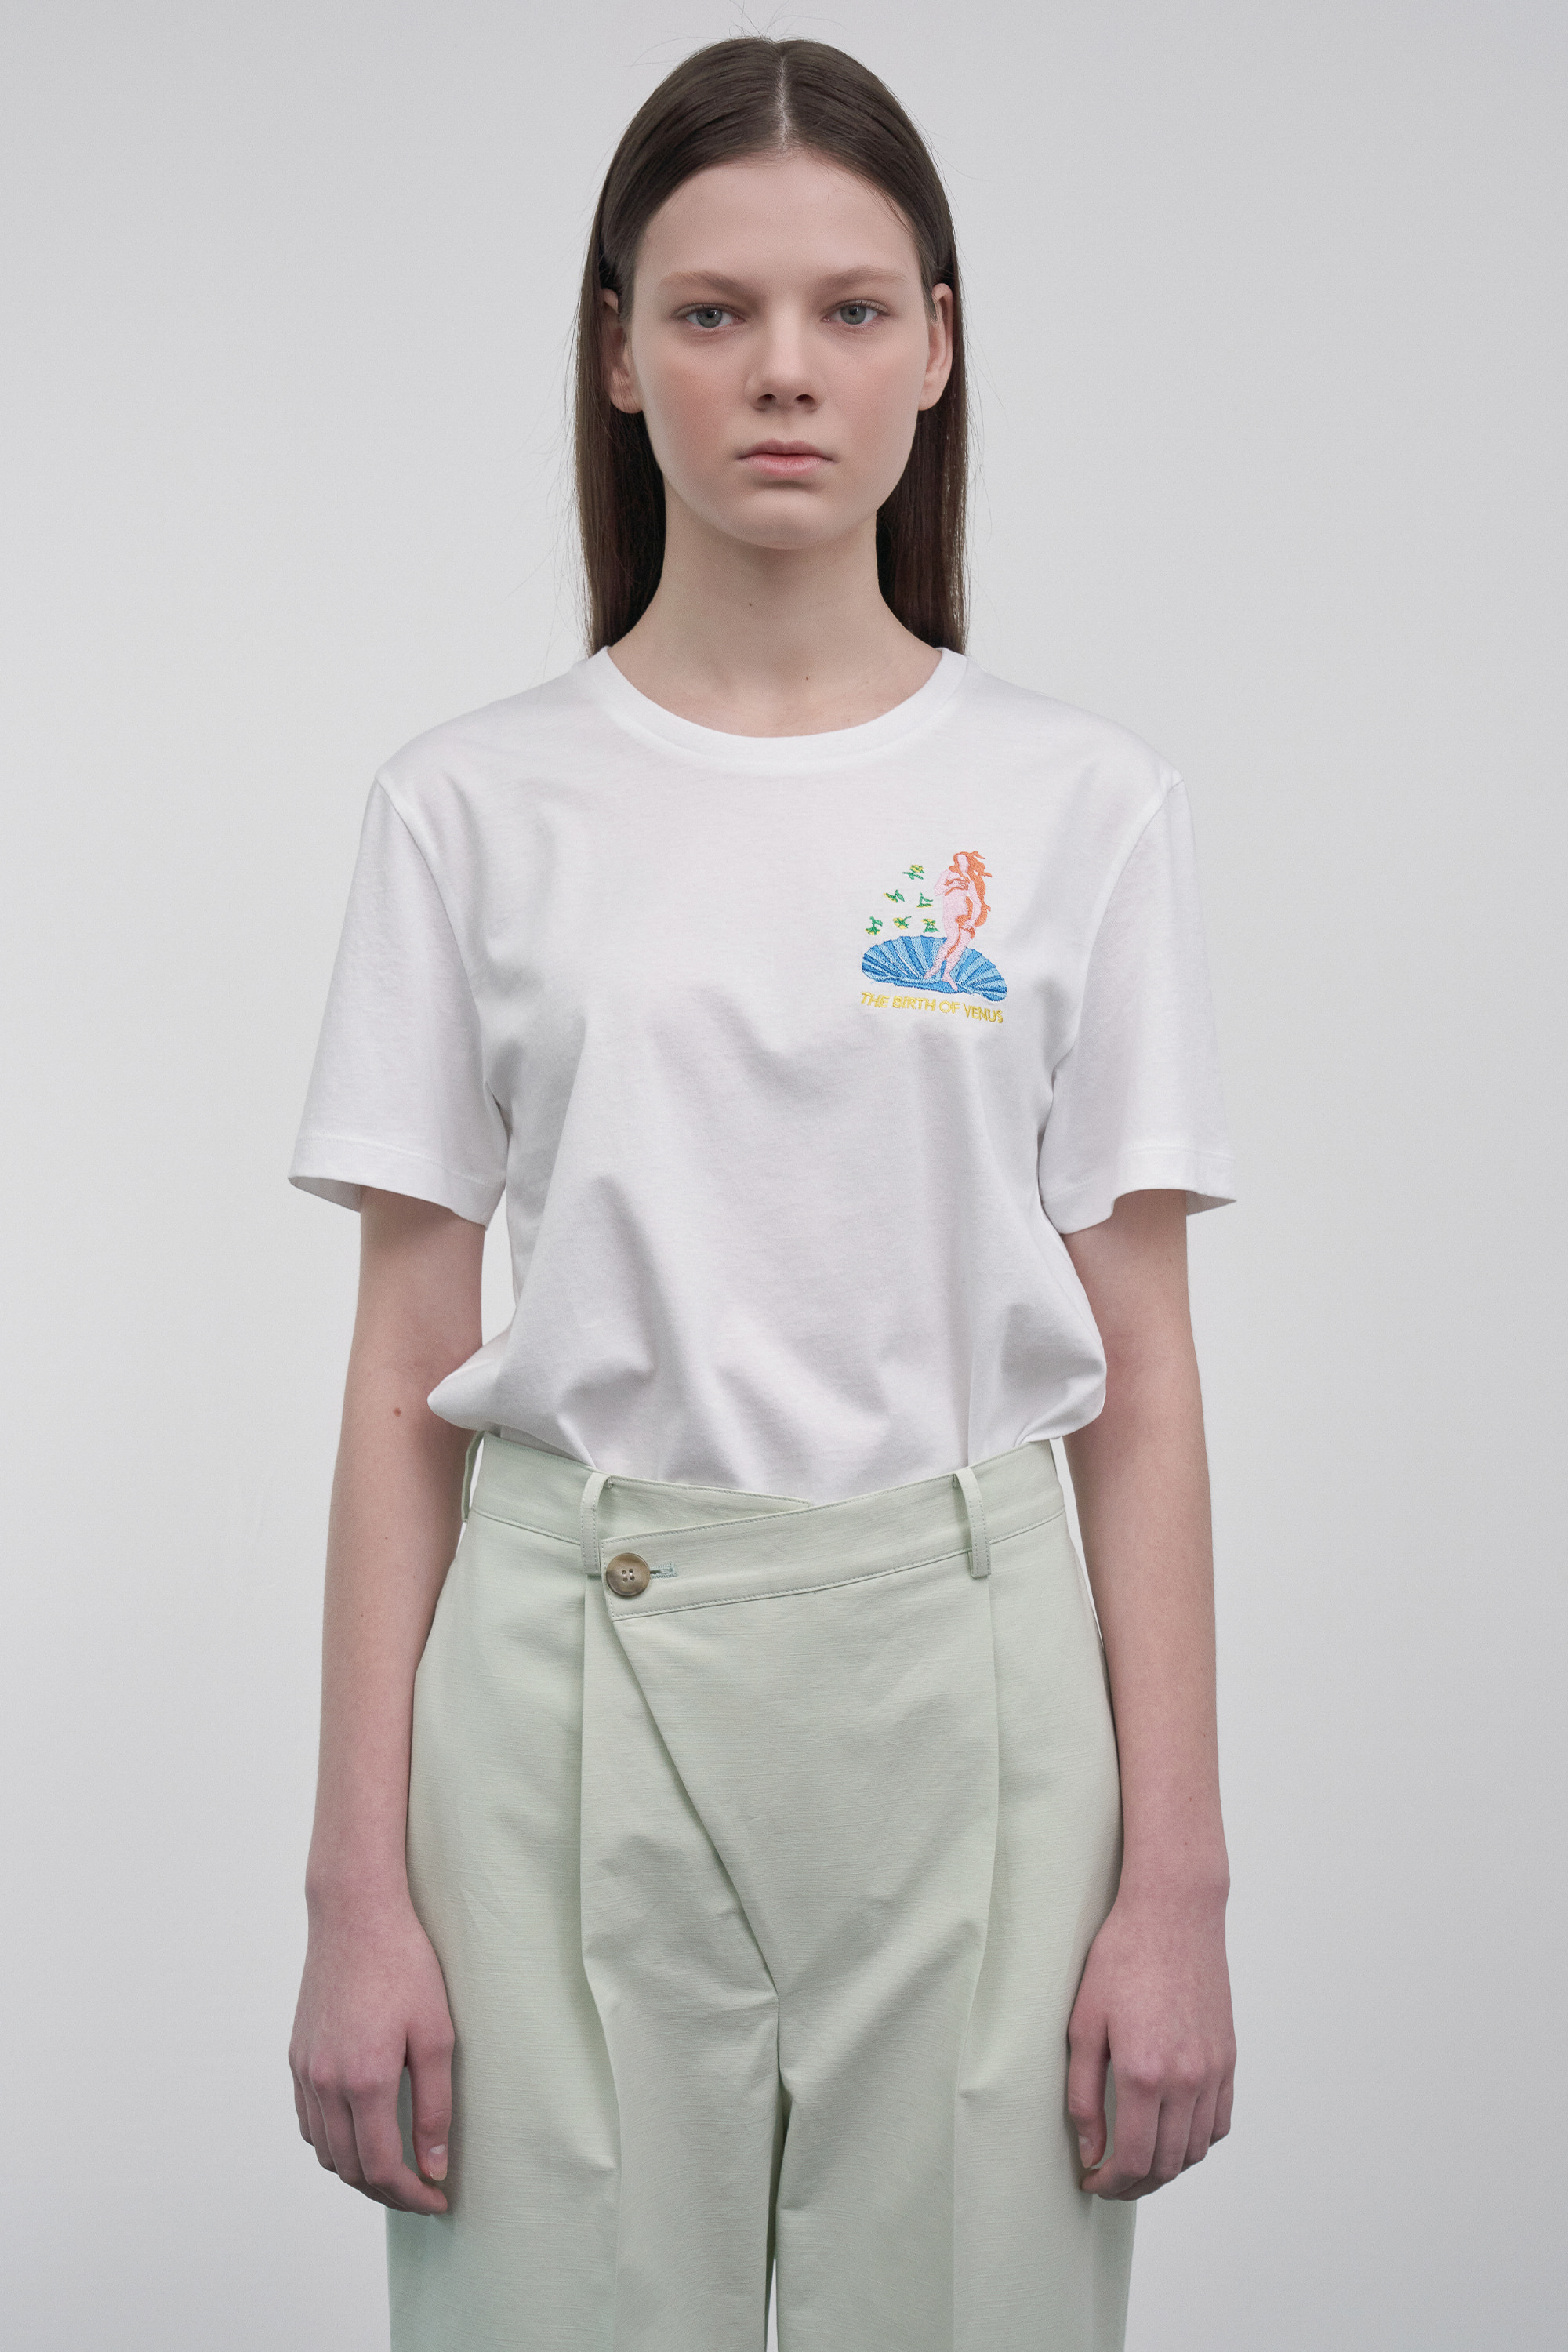 Heroine Campaign T-Shirt(the birth of venus)